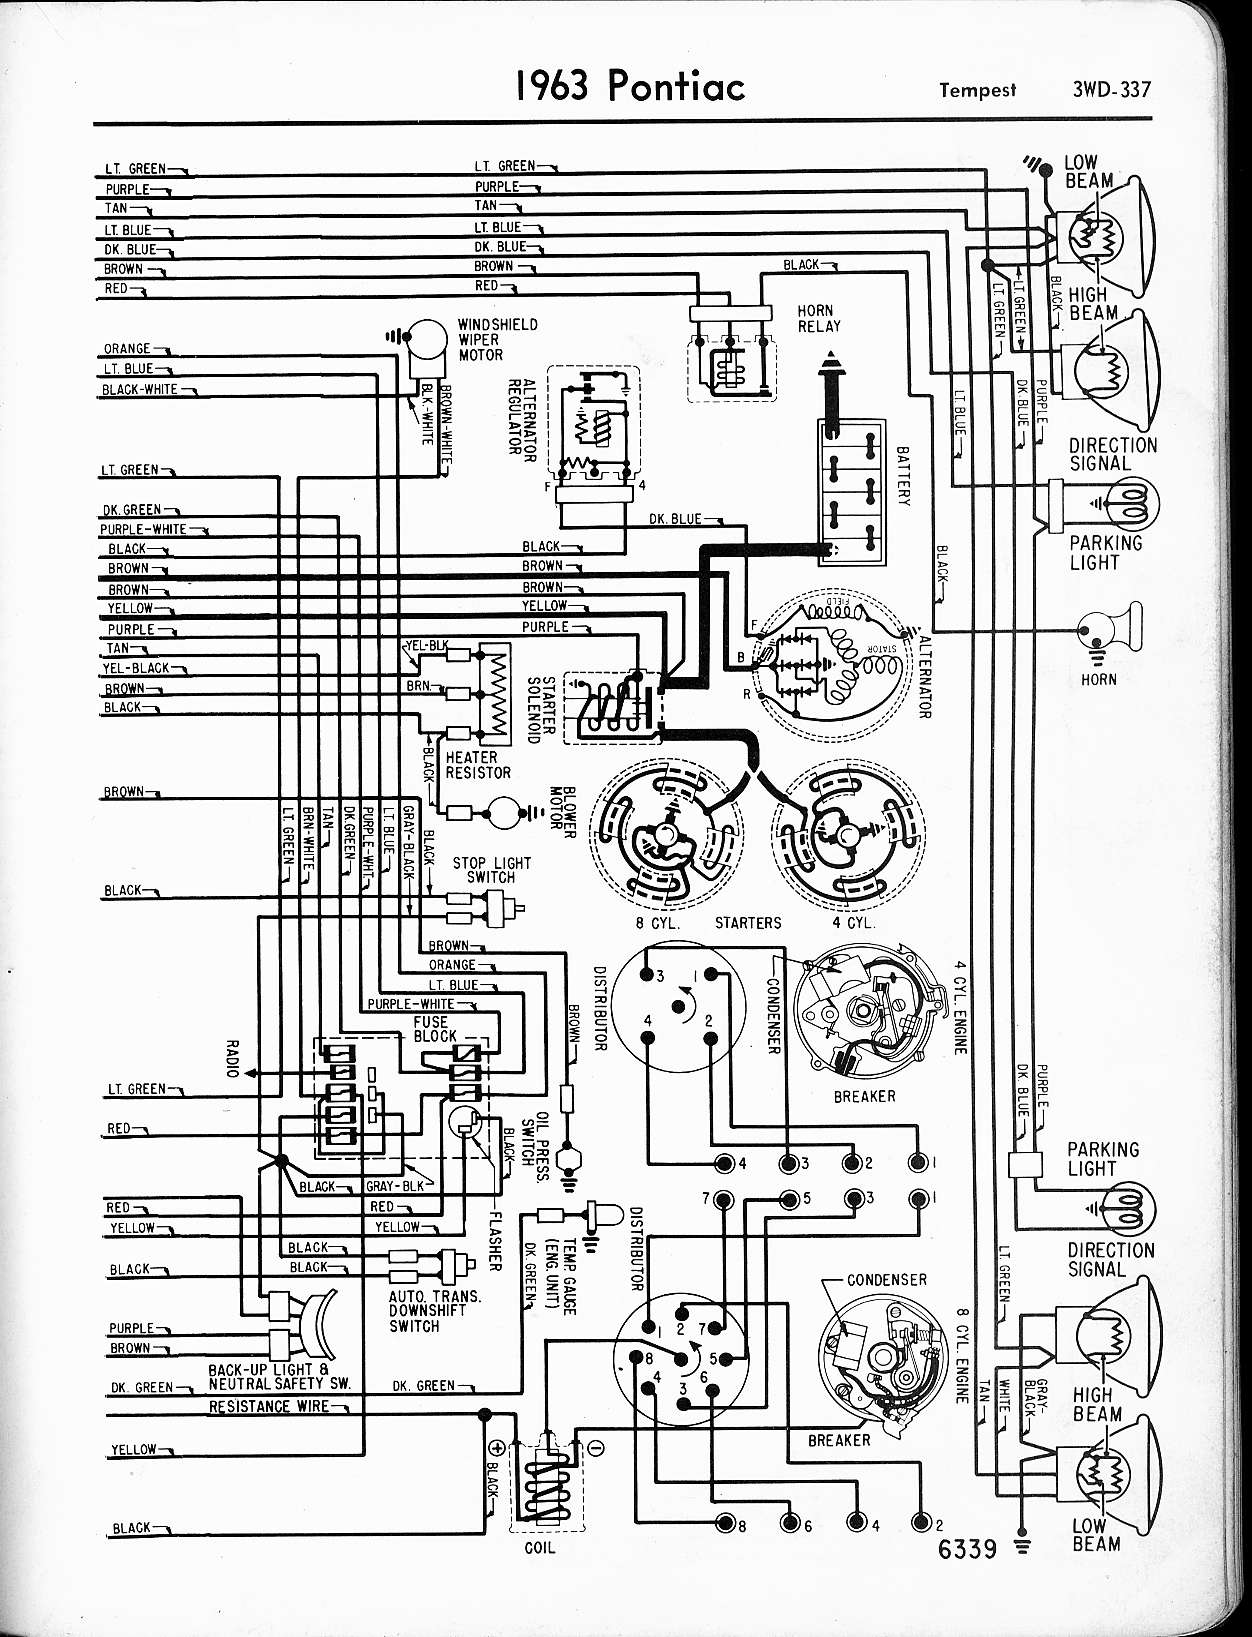 2003 Pontiac Grand Prix Engine Wiring Diagram Archive Of Bonneville Belt Schematic Starting Know About Rh Prezzy Co